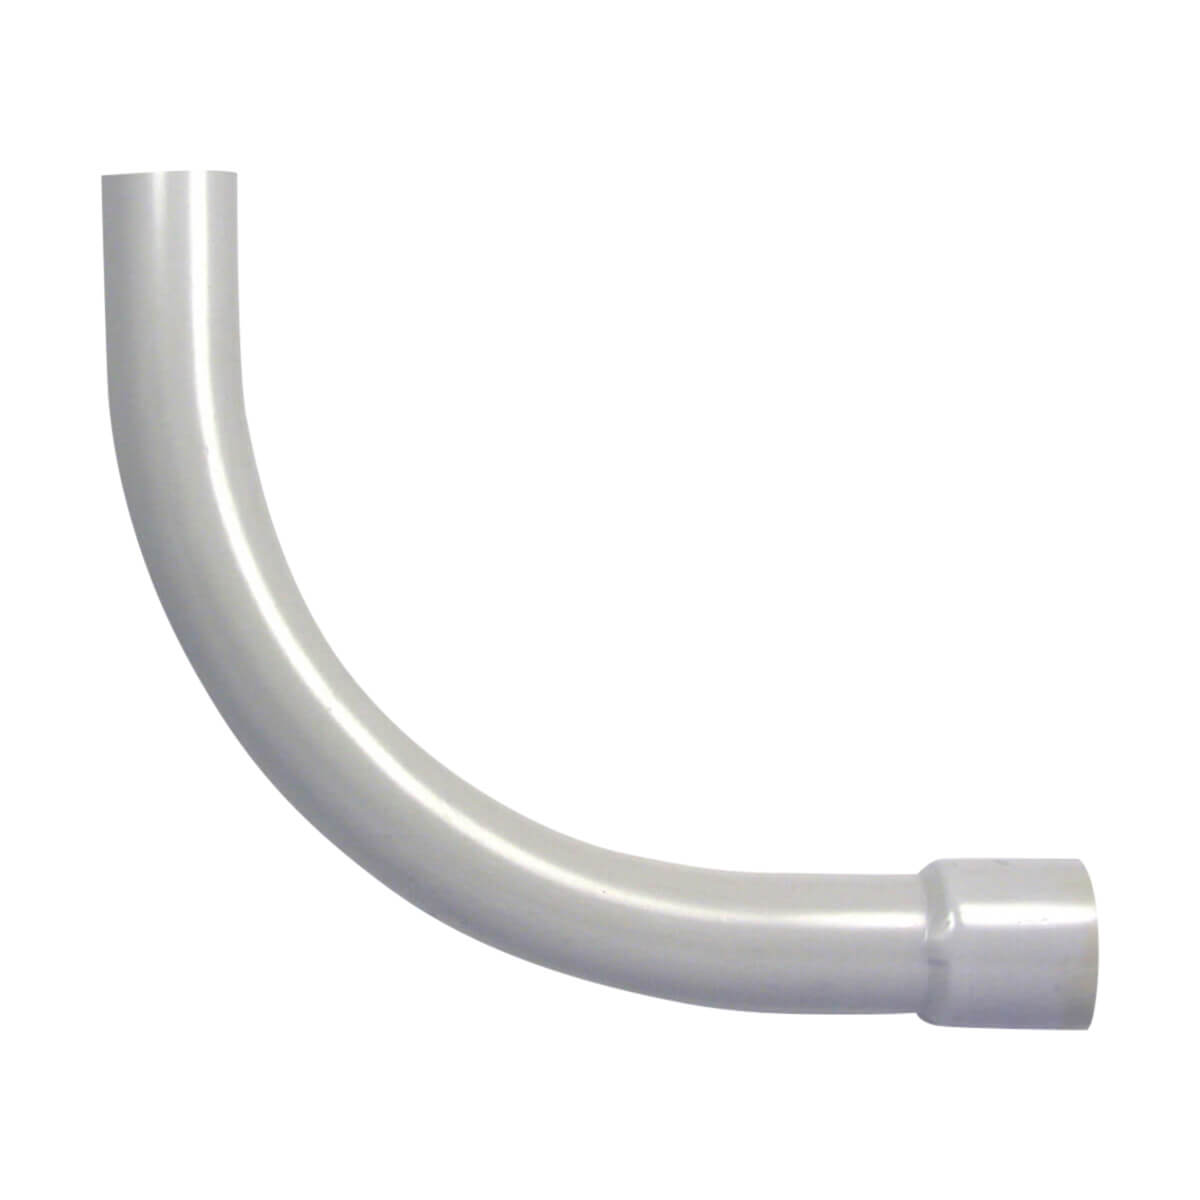 PVC Conduit 90° Elbow - Bell-end - 3/4-in